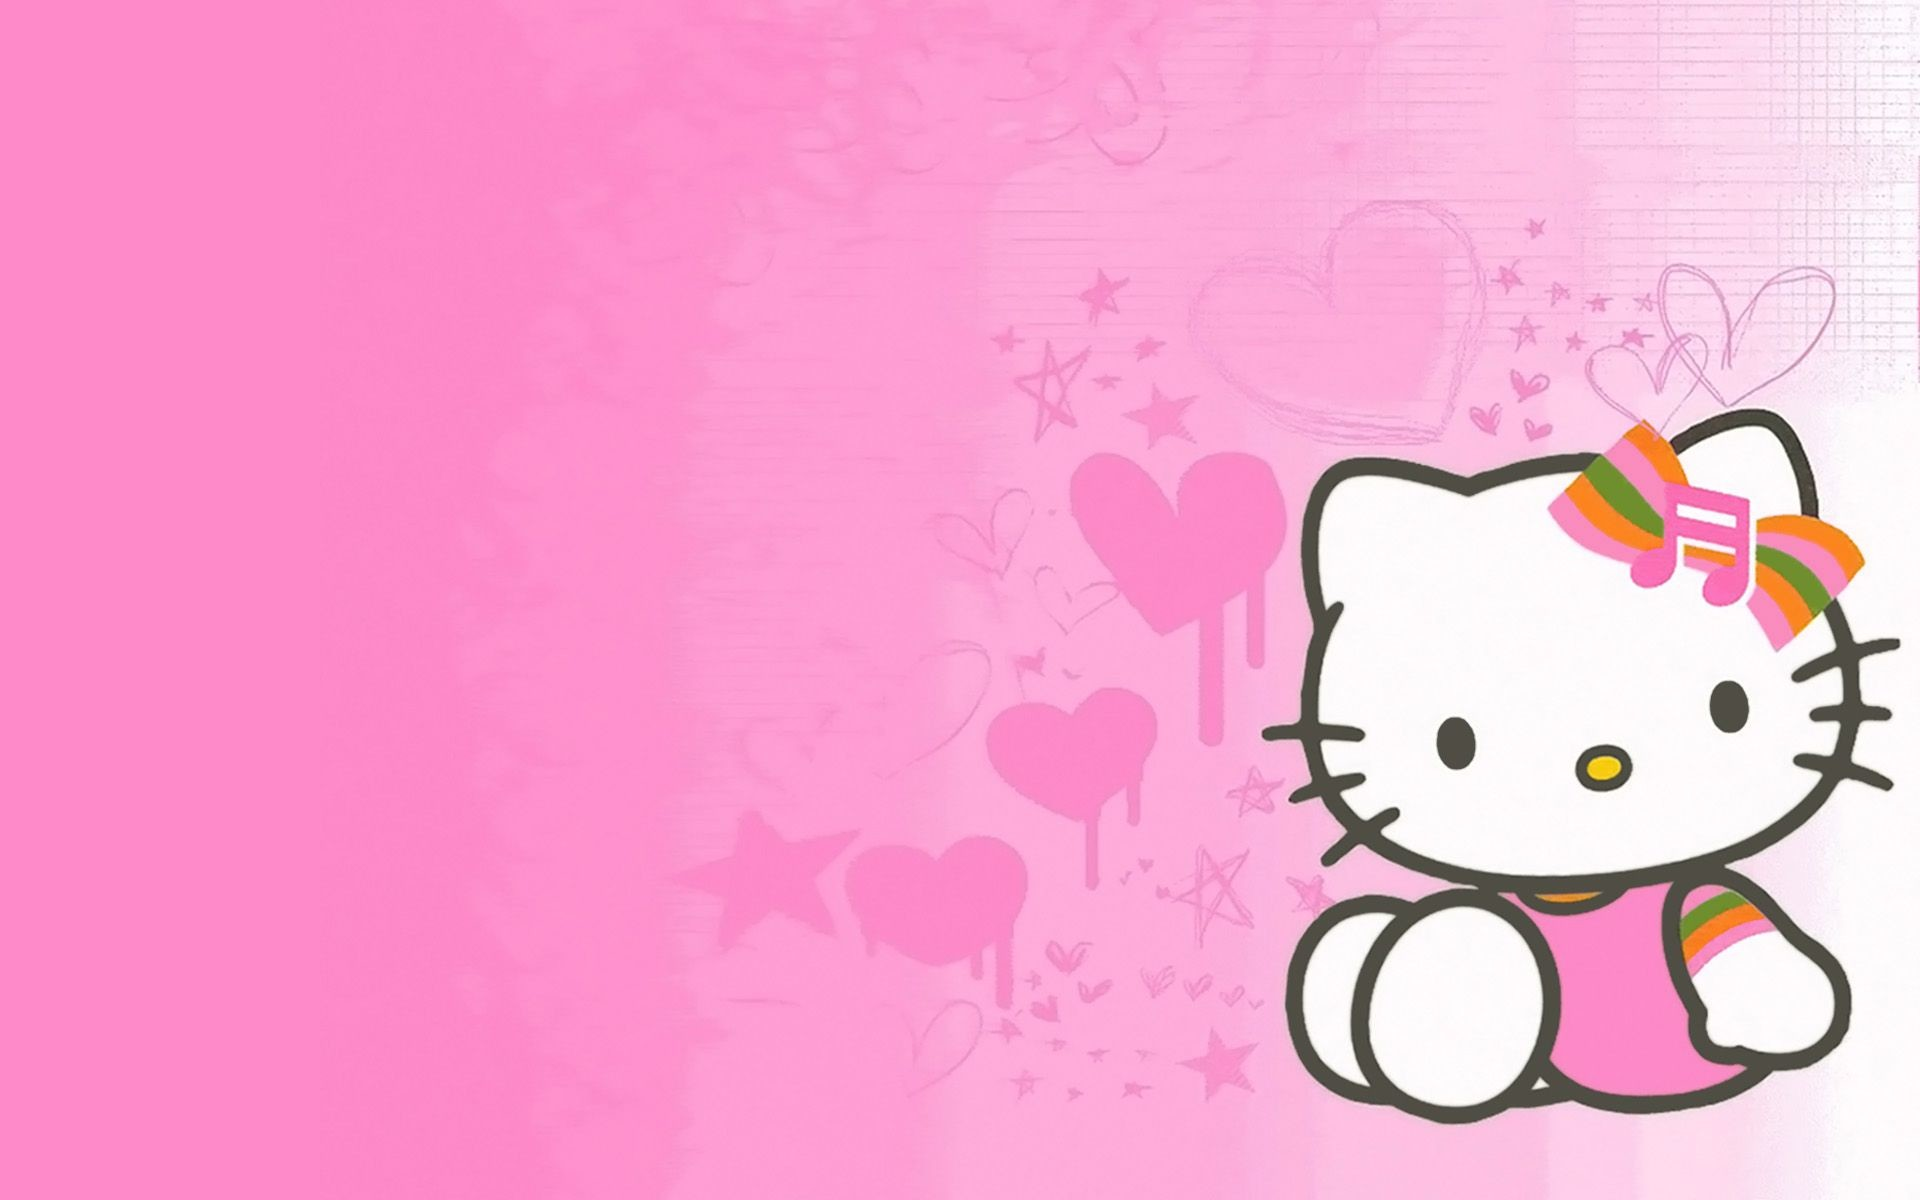 Free Iphone Wallpapers Cute Hello Kitty Cute Image Background 52 Images